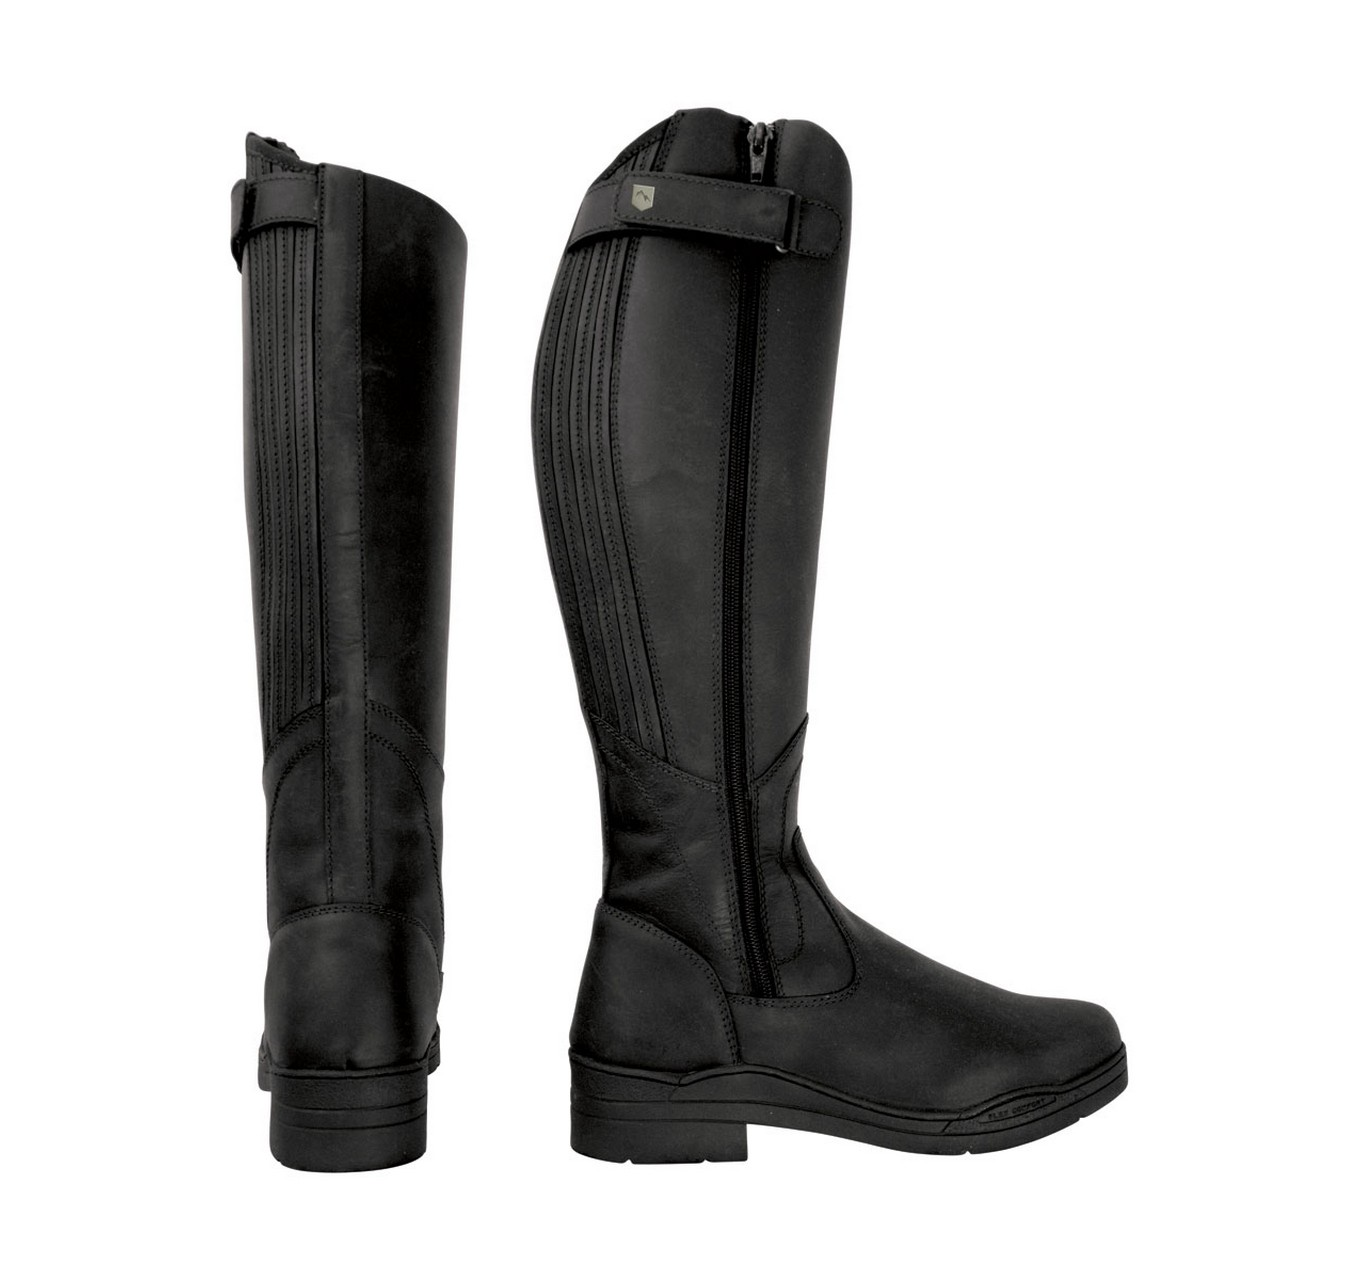 Londonderry Boots Black 38